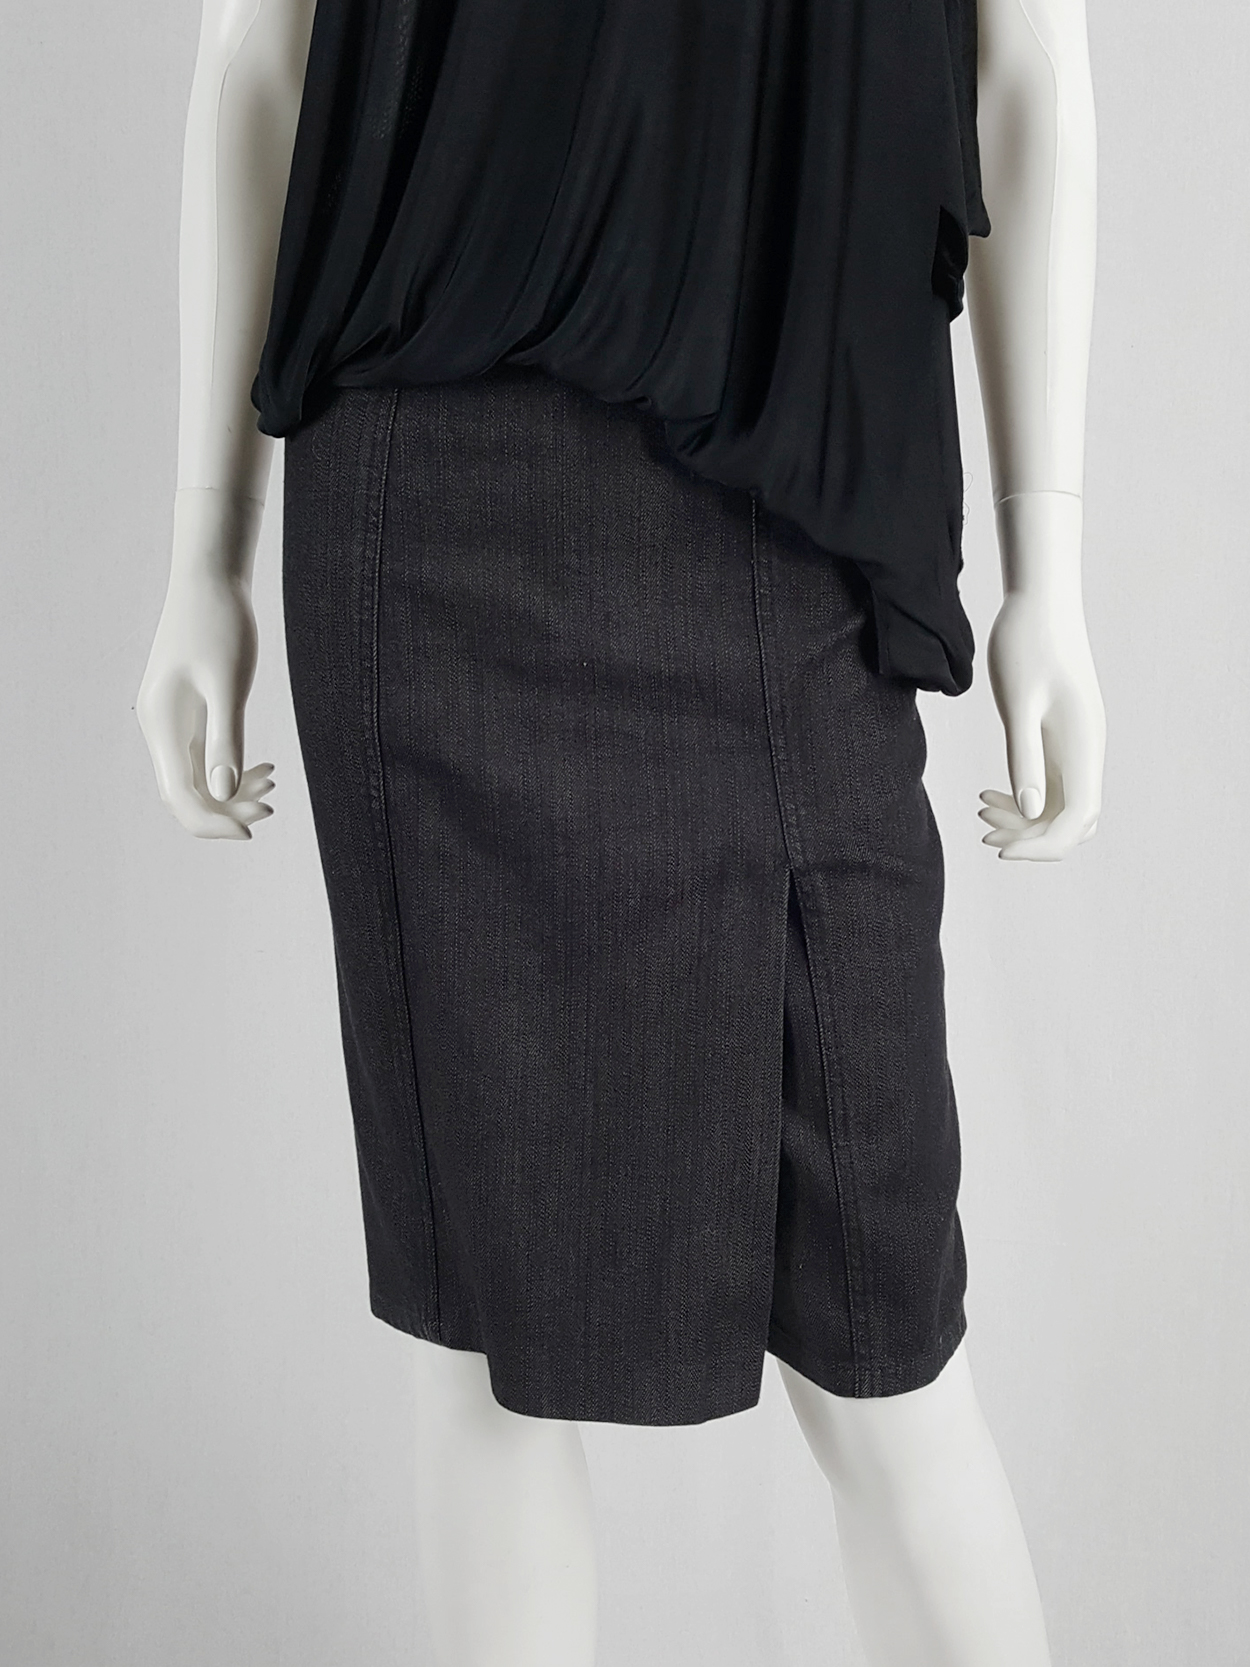 vaniitas archival Maison Martin Margiela denim skirted shorts with front flap runway fall 2007 154856